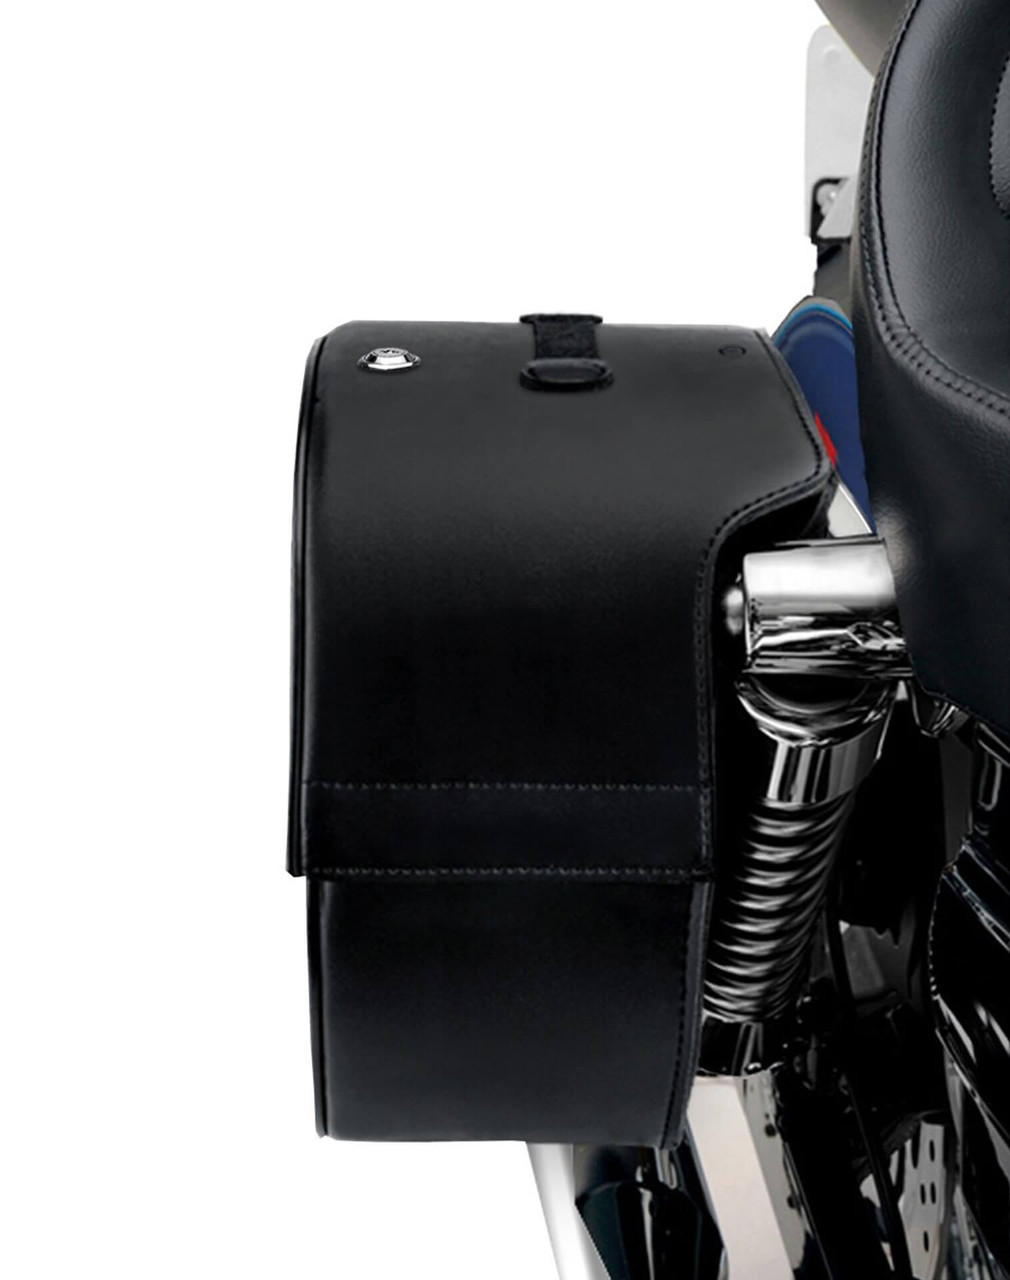 Honda 1500 Valkyrie Interstate Spear Shock Cutout Motorcycle Saddlebags Shock Cutout View